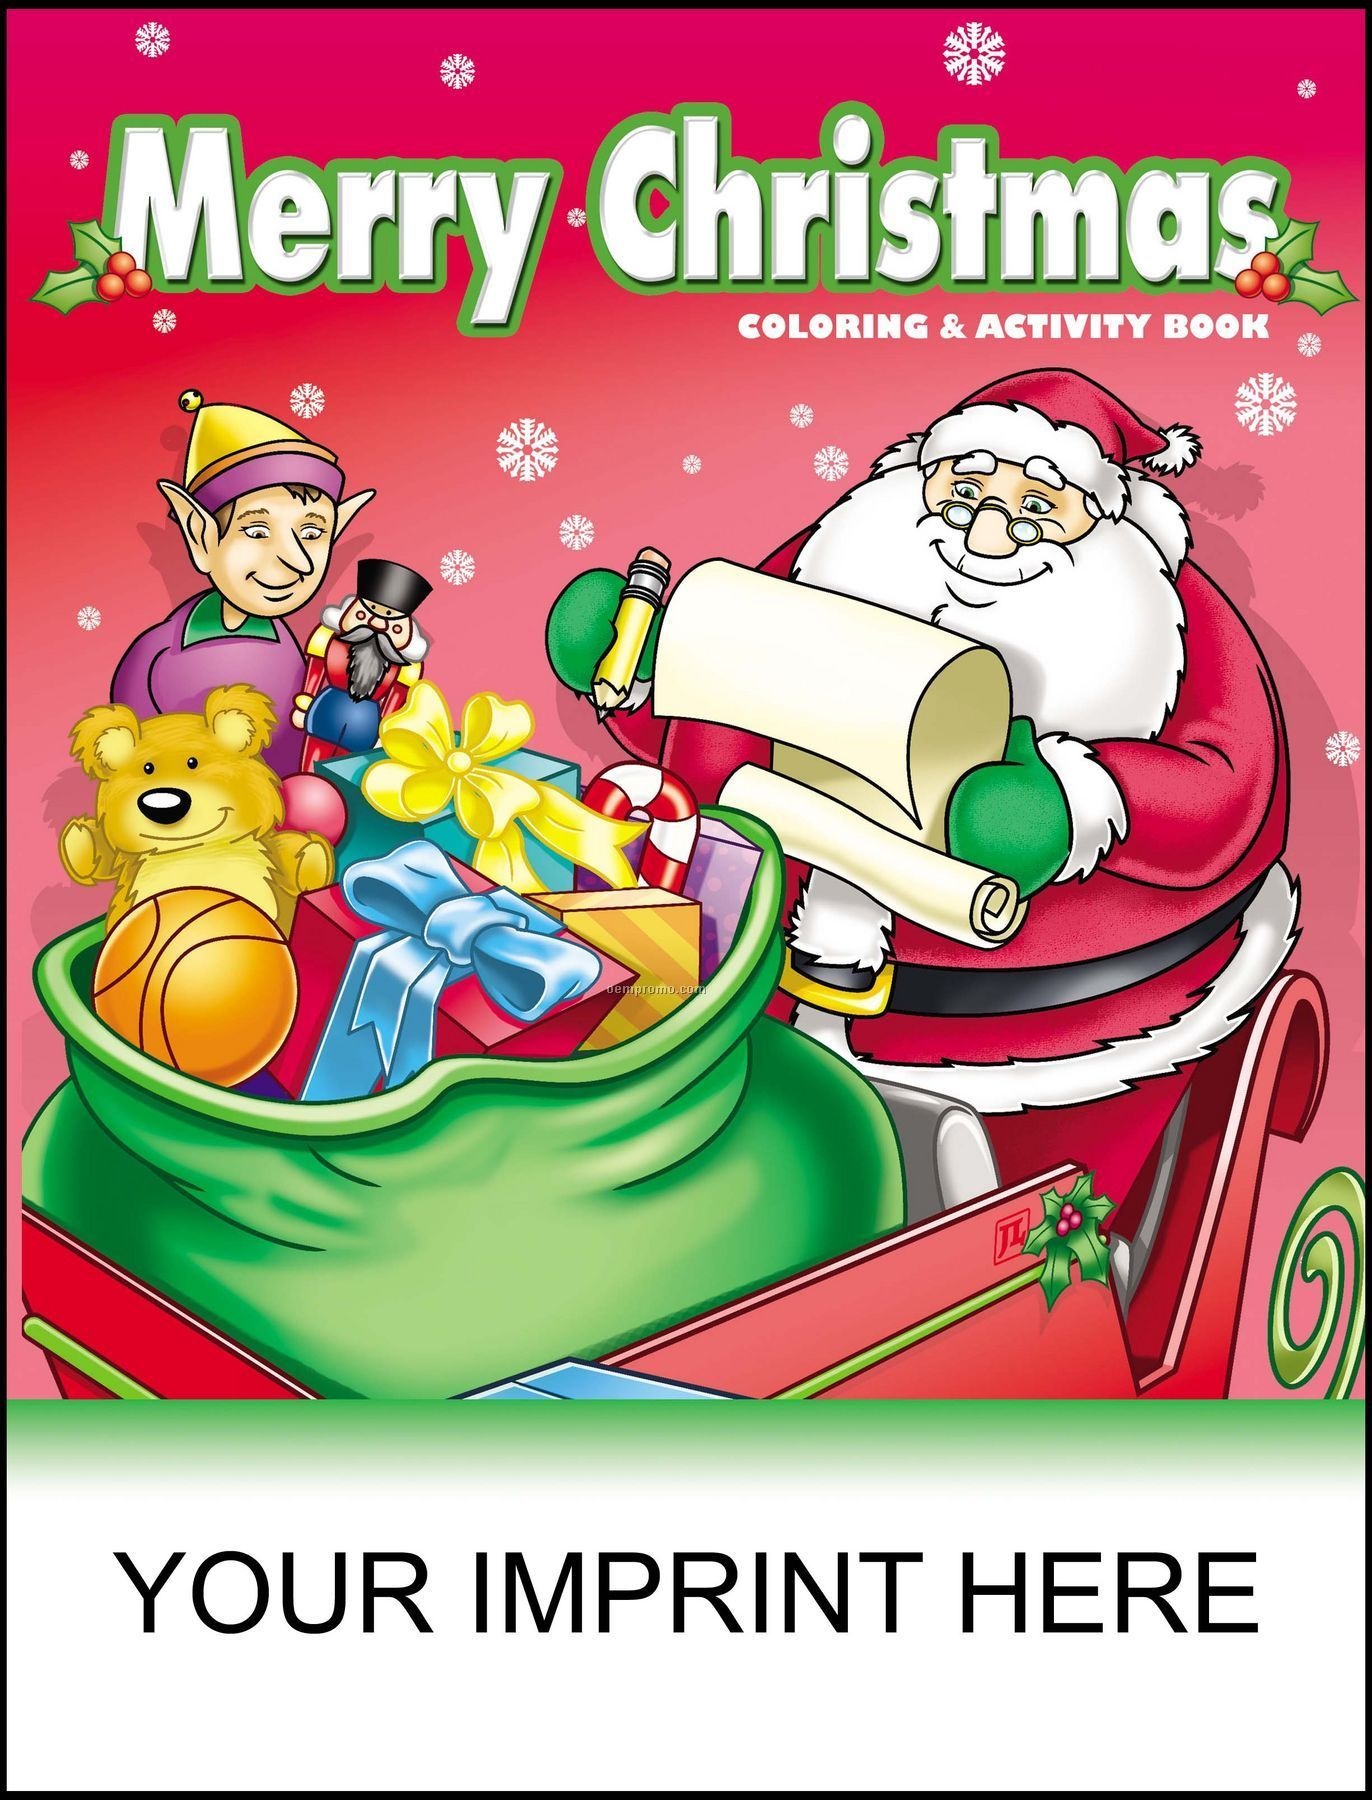 merry christmas coloring activity book santa holding list